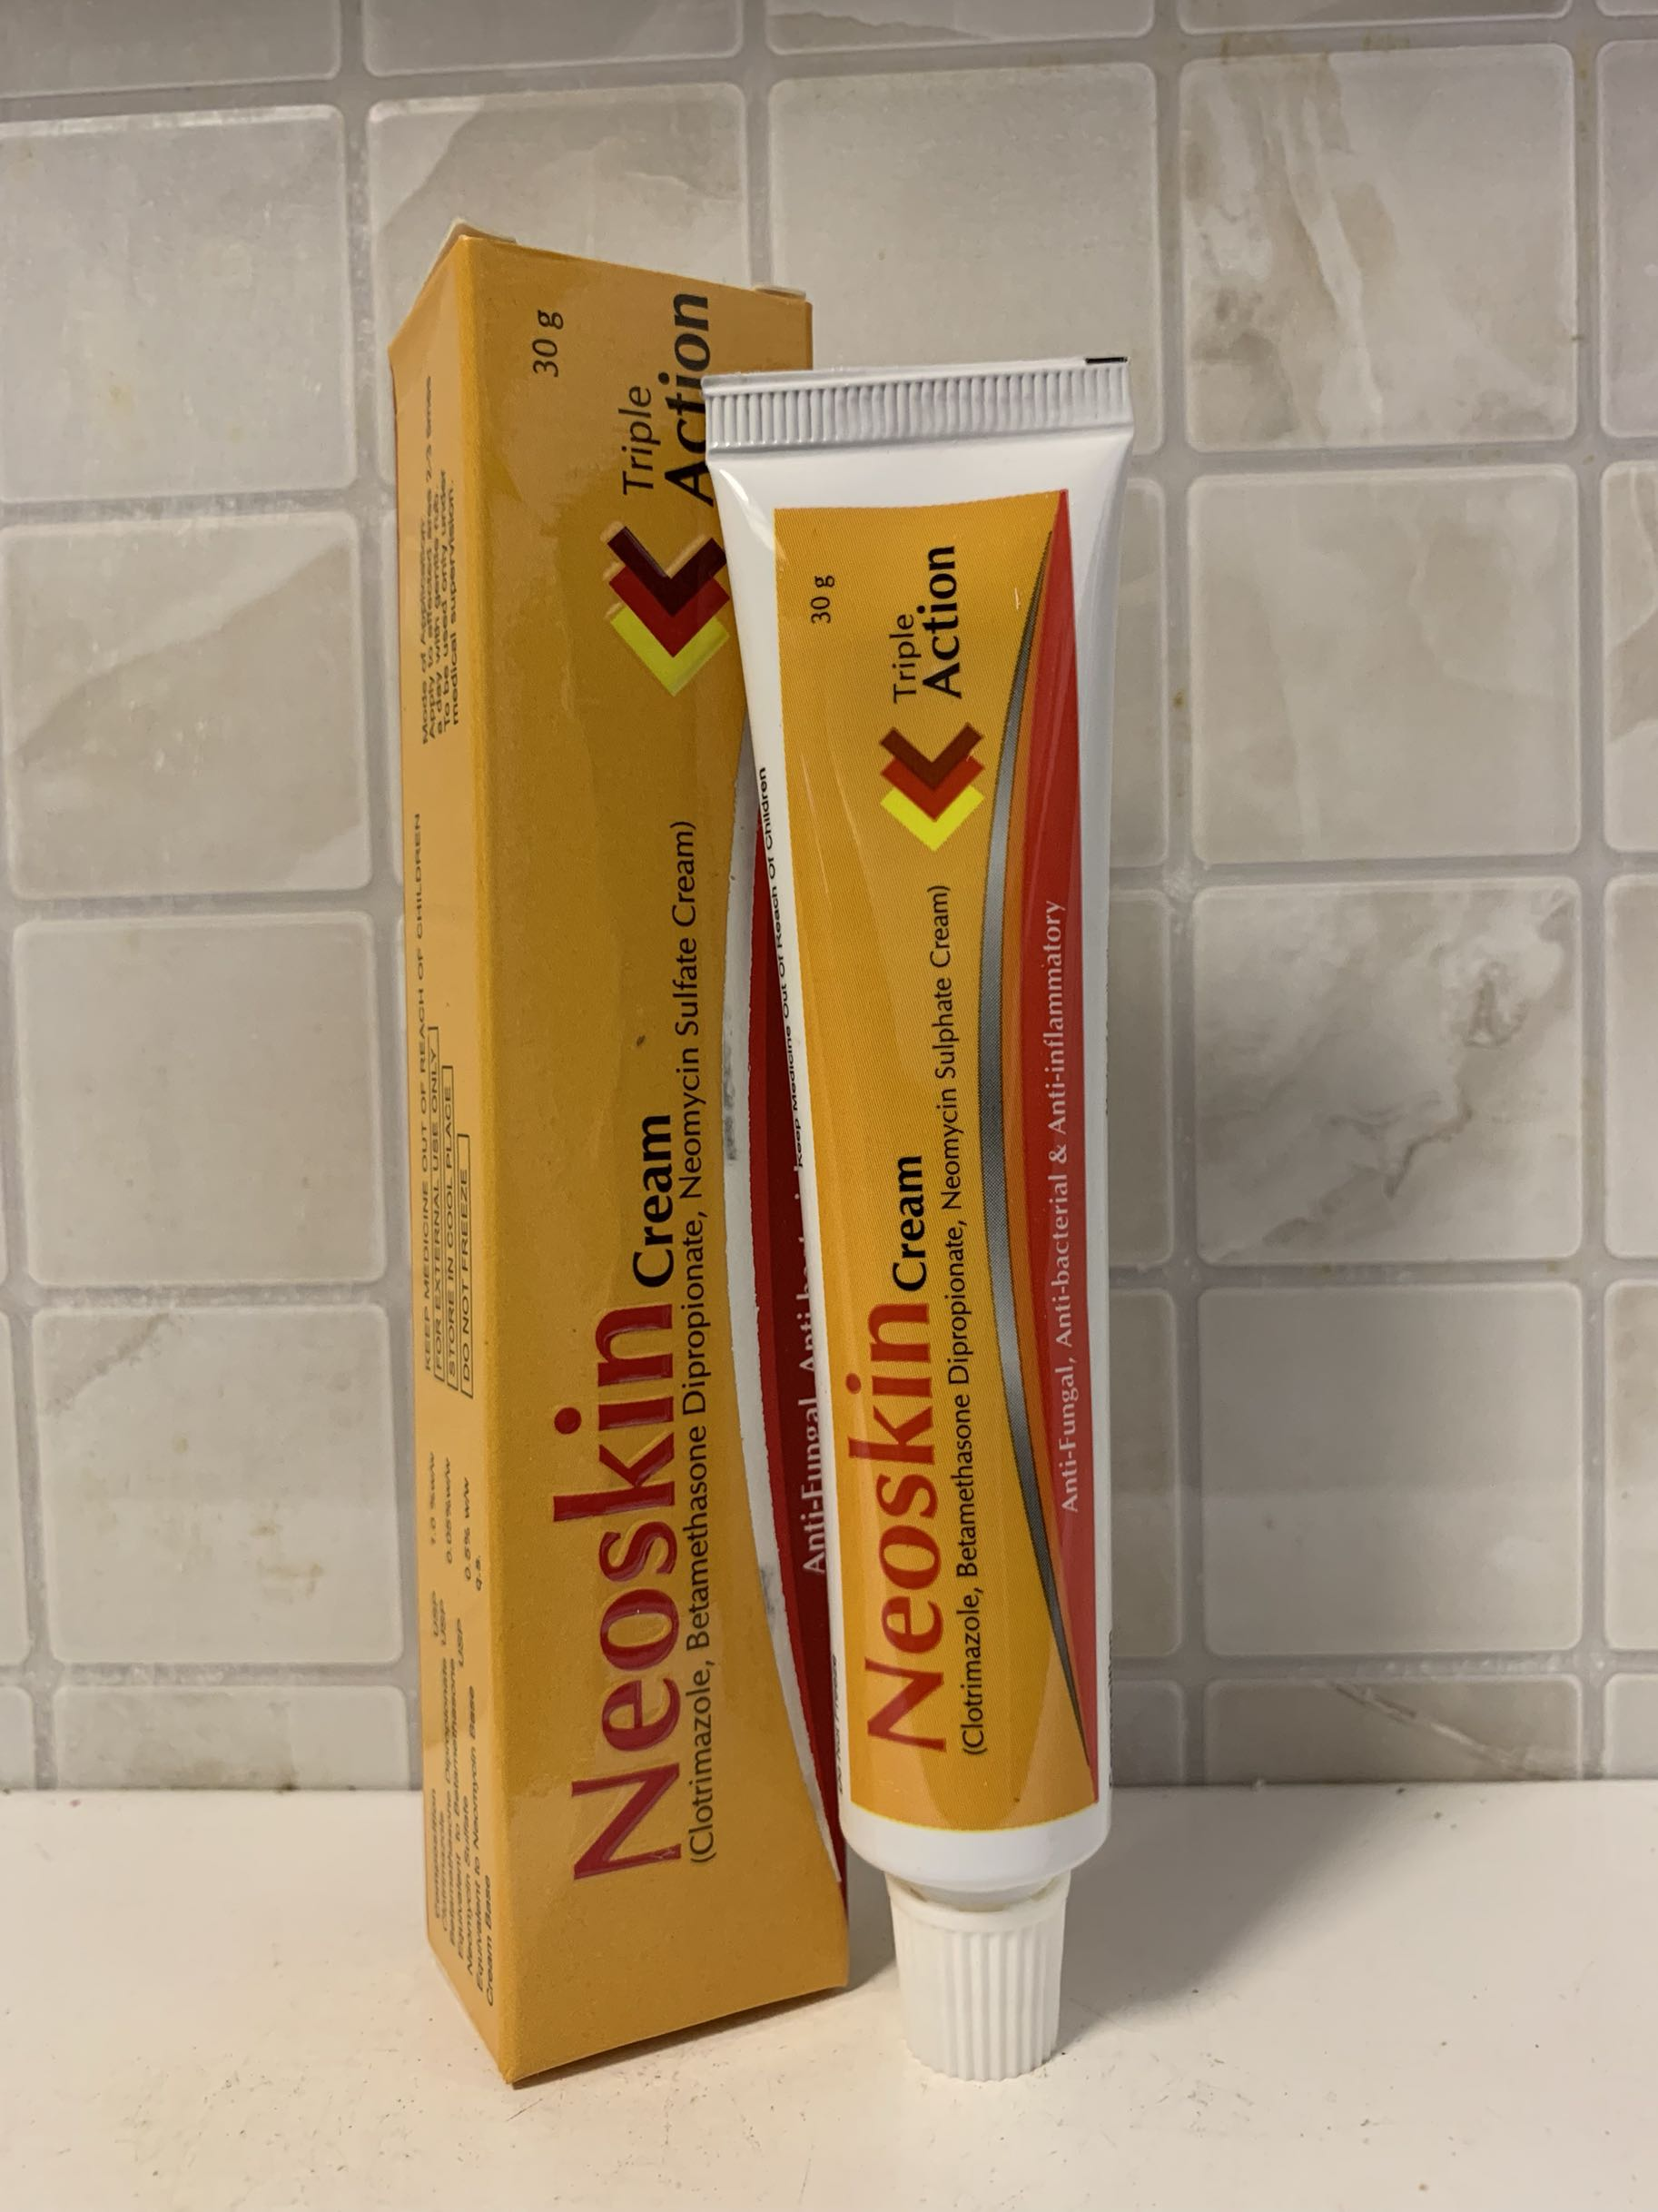 Neoskin Cream Triple Action 30g